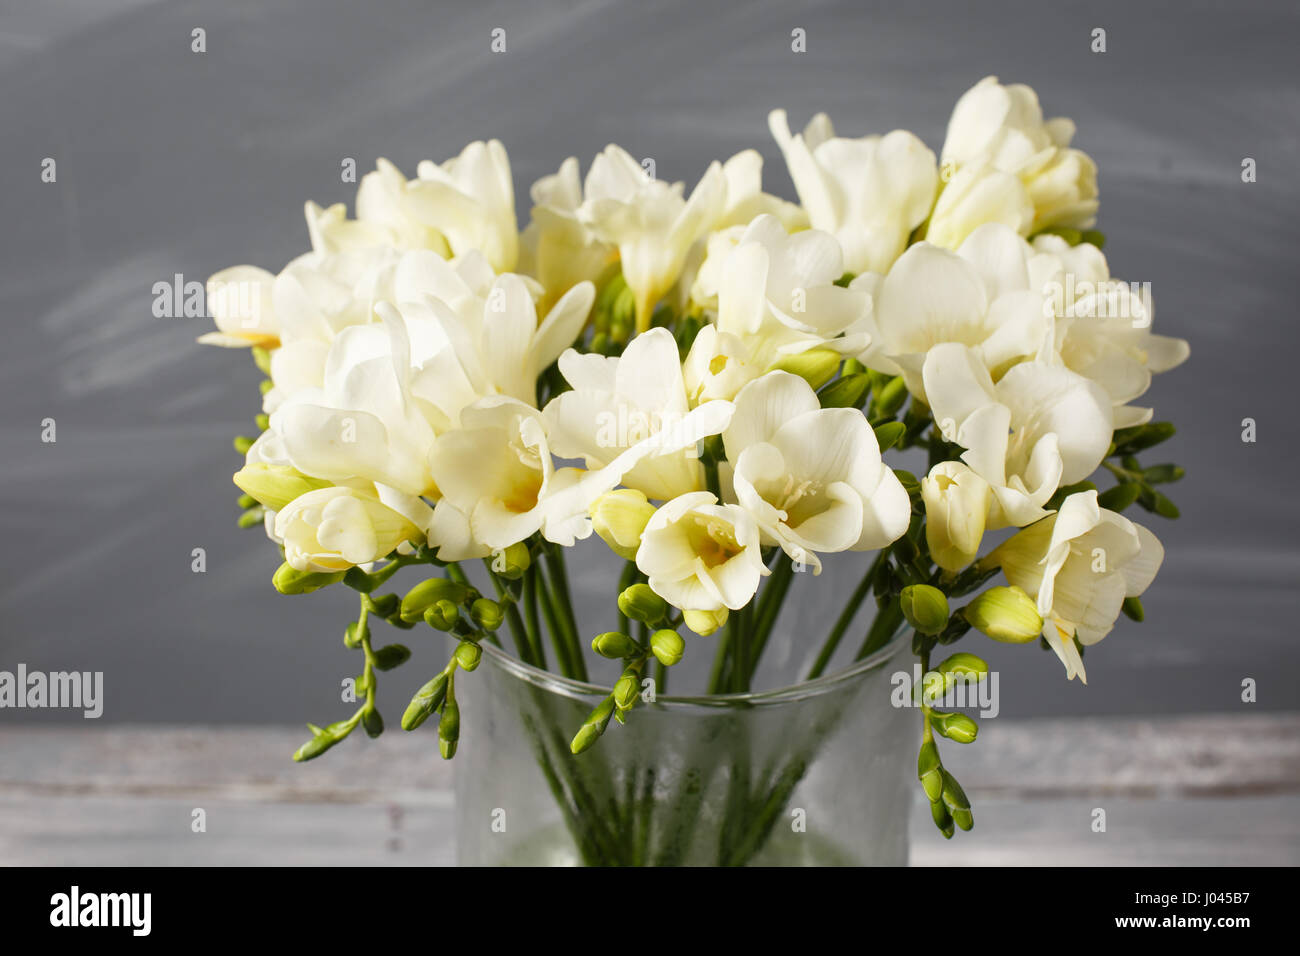 White Freesia Flowers In Decorative Vase On A Background Of Gray